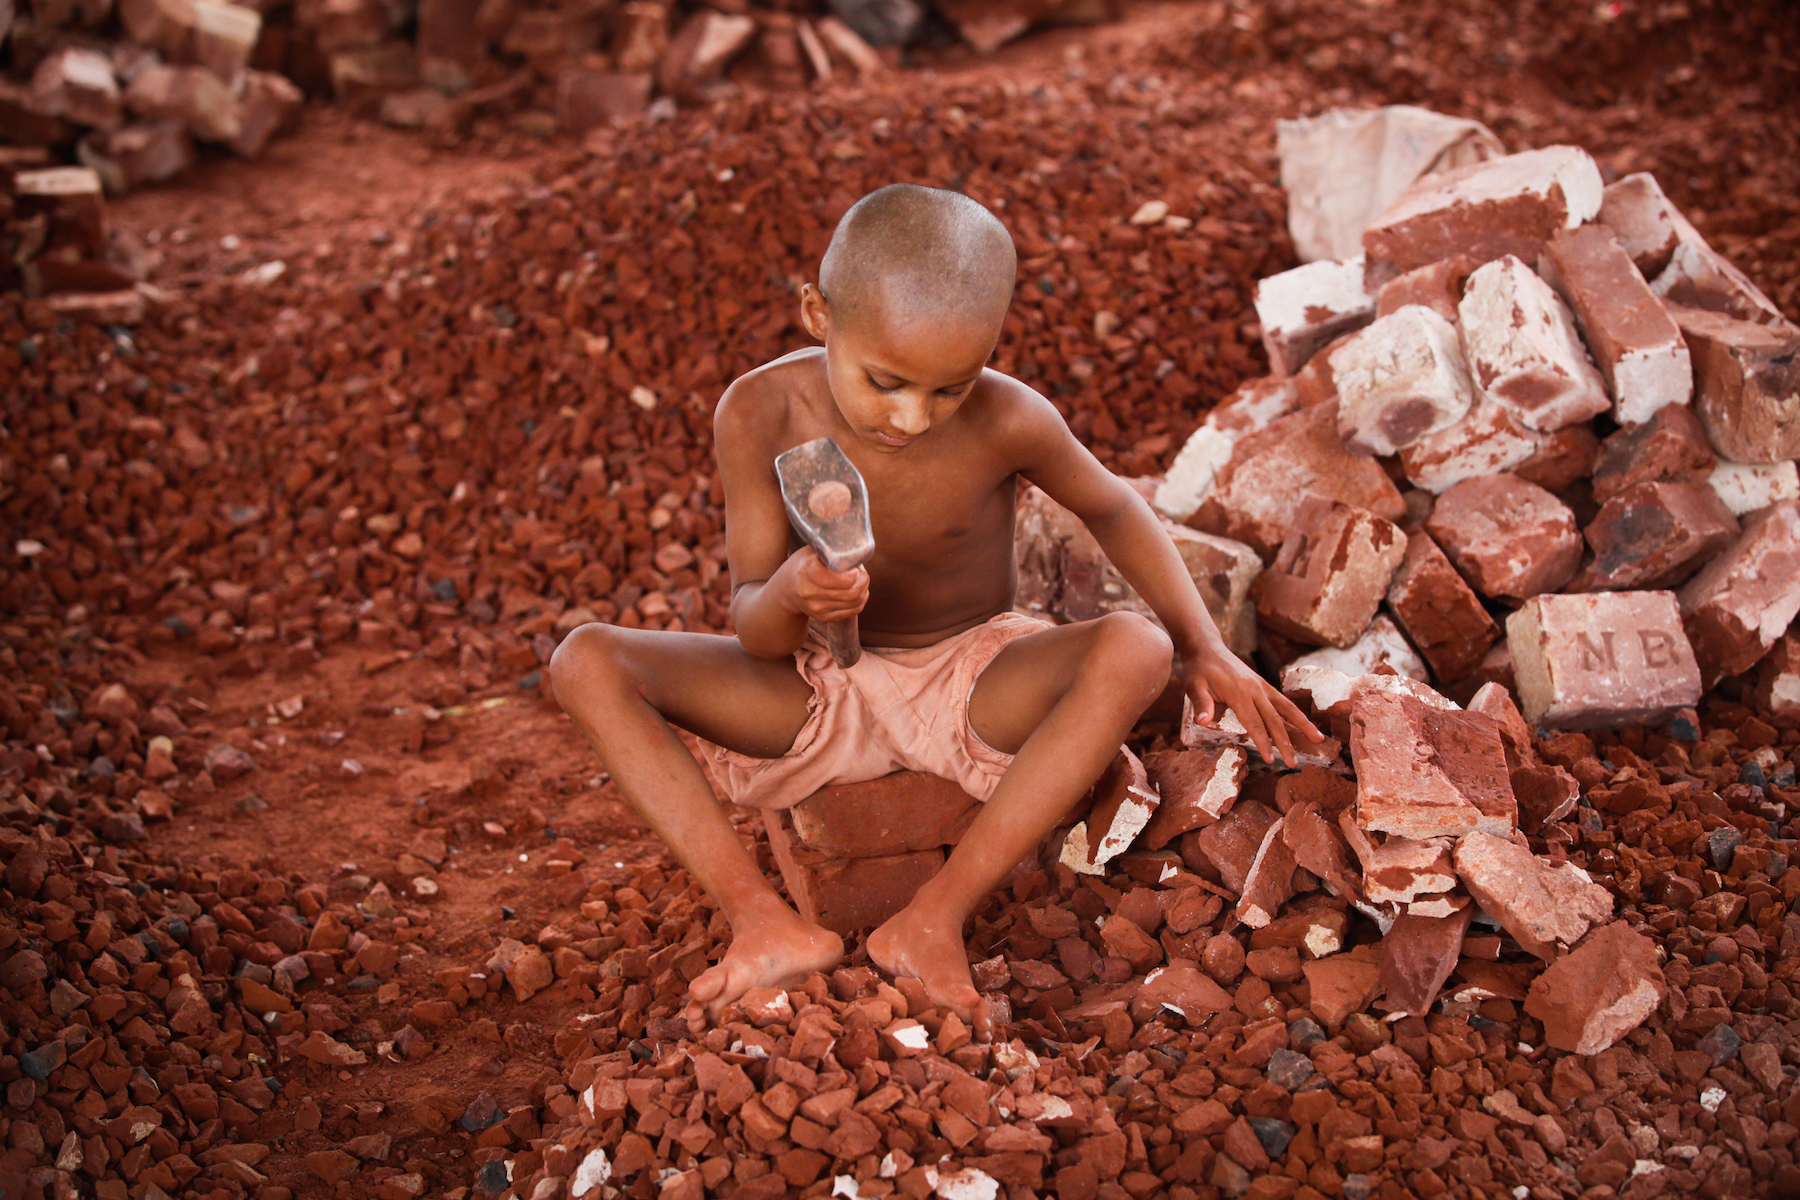 A Bangladeshi child break bricks at Postogola brick breaking yard in Dhaka, Bangladesh, on June 3, 2017